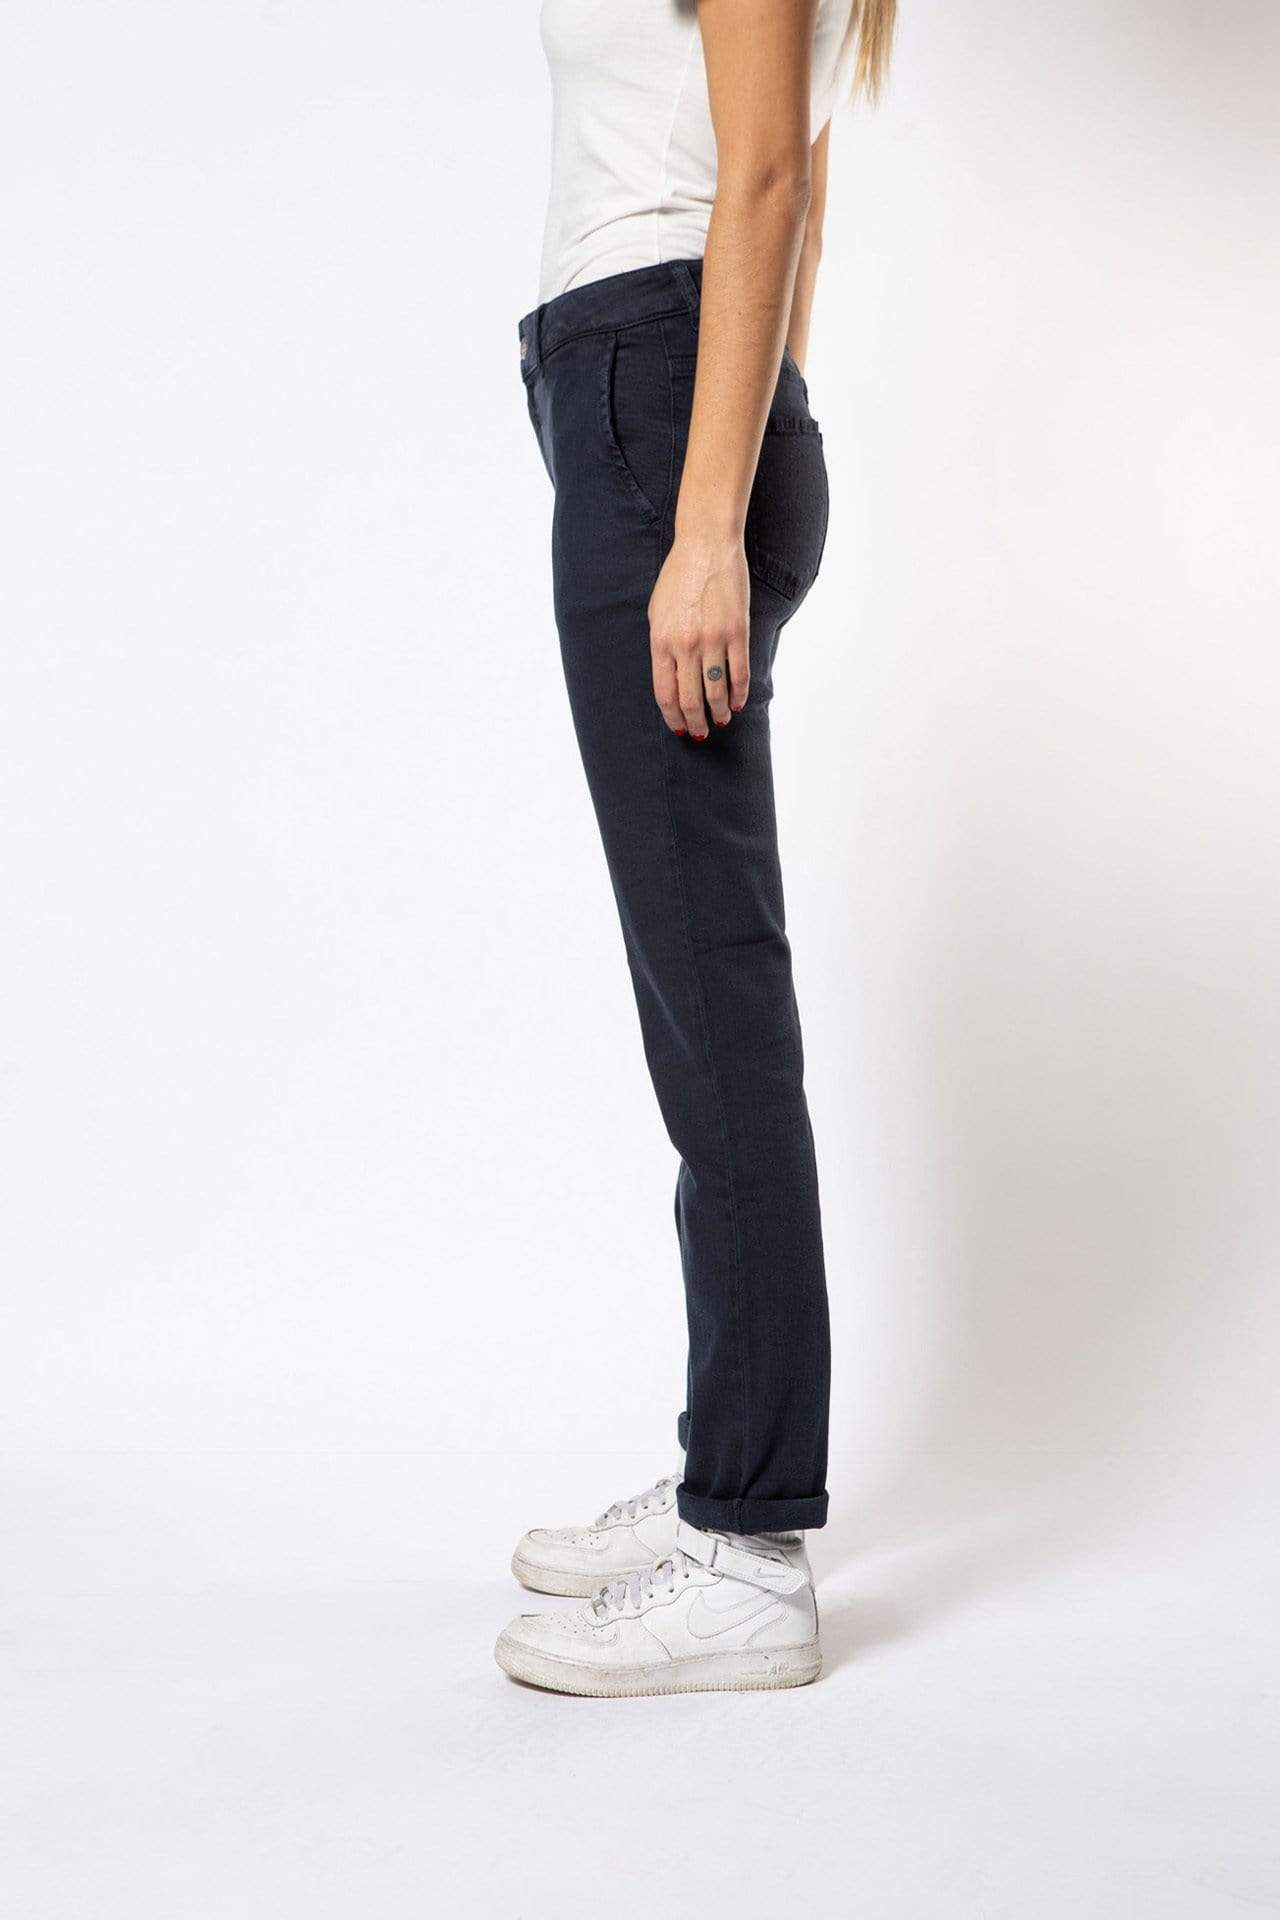 Par.co Denim pant Primula Jeans in Organic Cotton. sustainable fashion ethical fashion